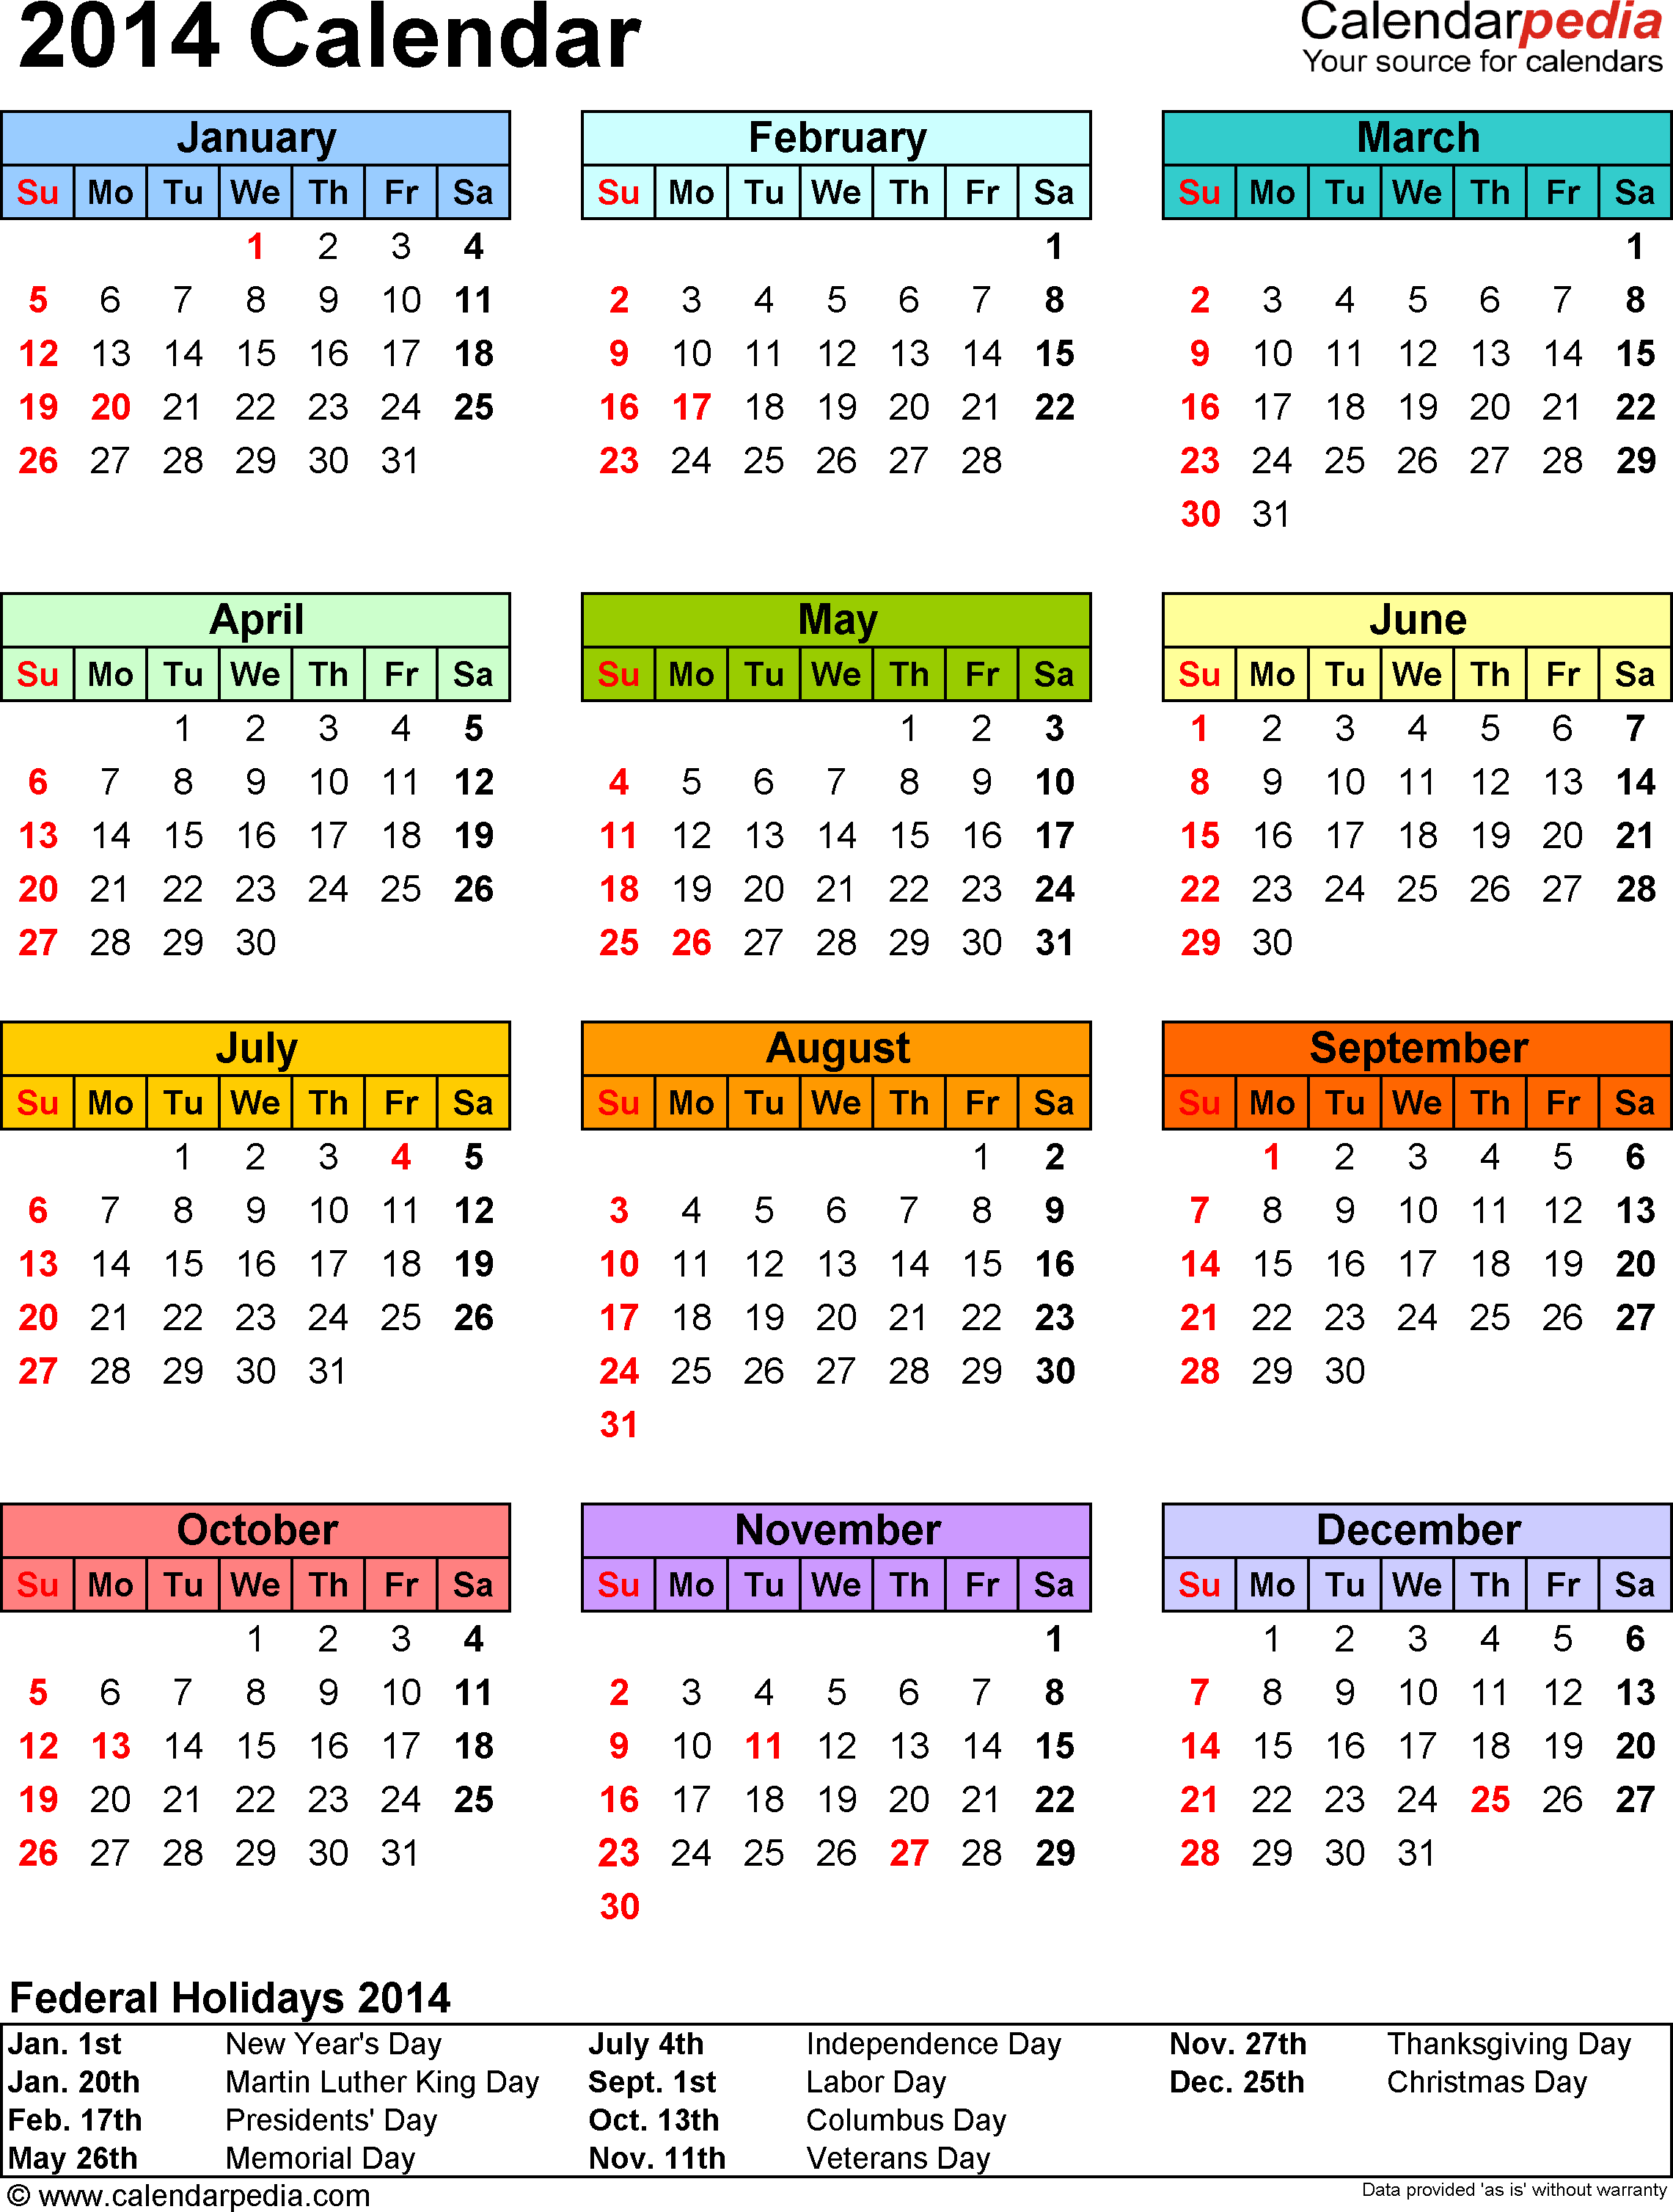 Template 12: 2014 Calendar for Word, 1 page, portrait orientation, in color